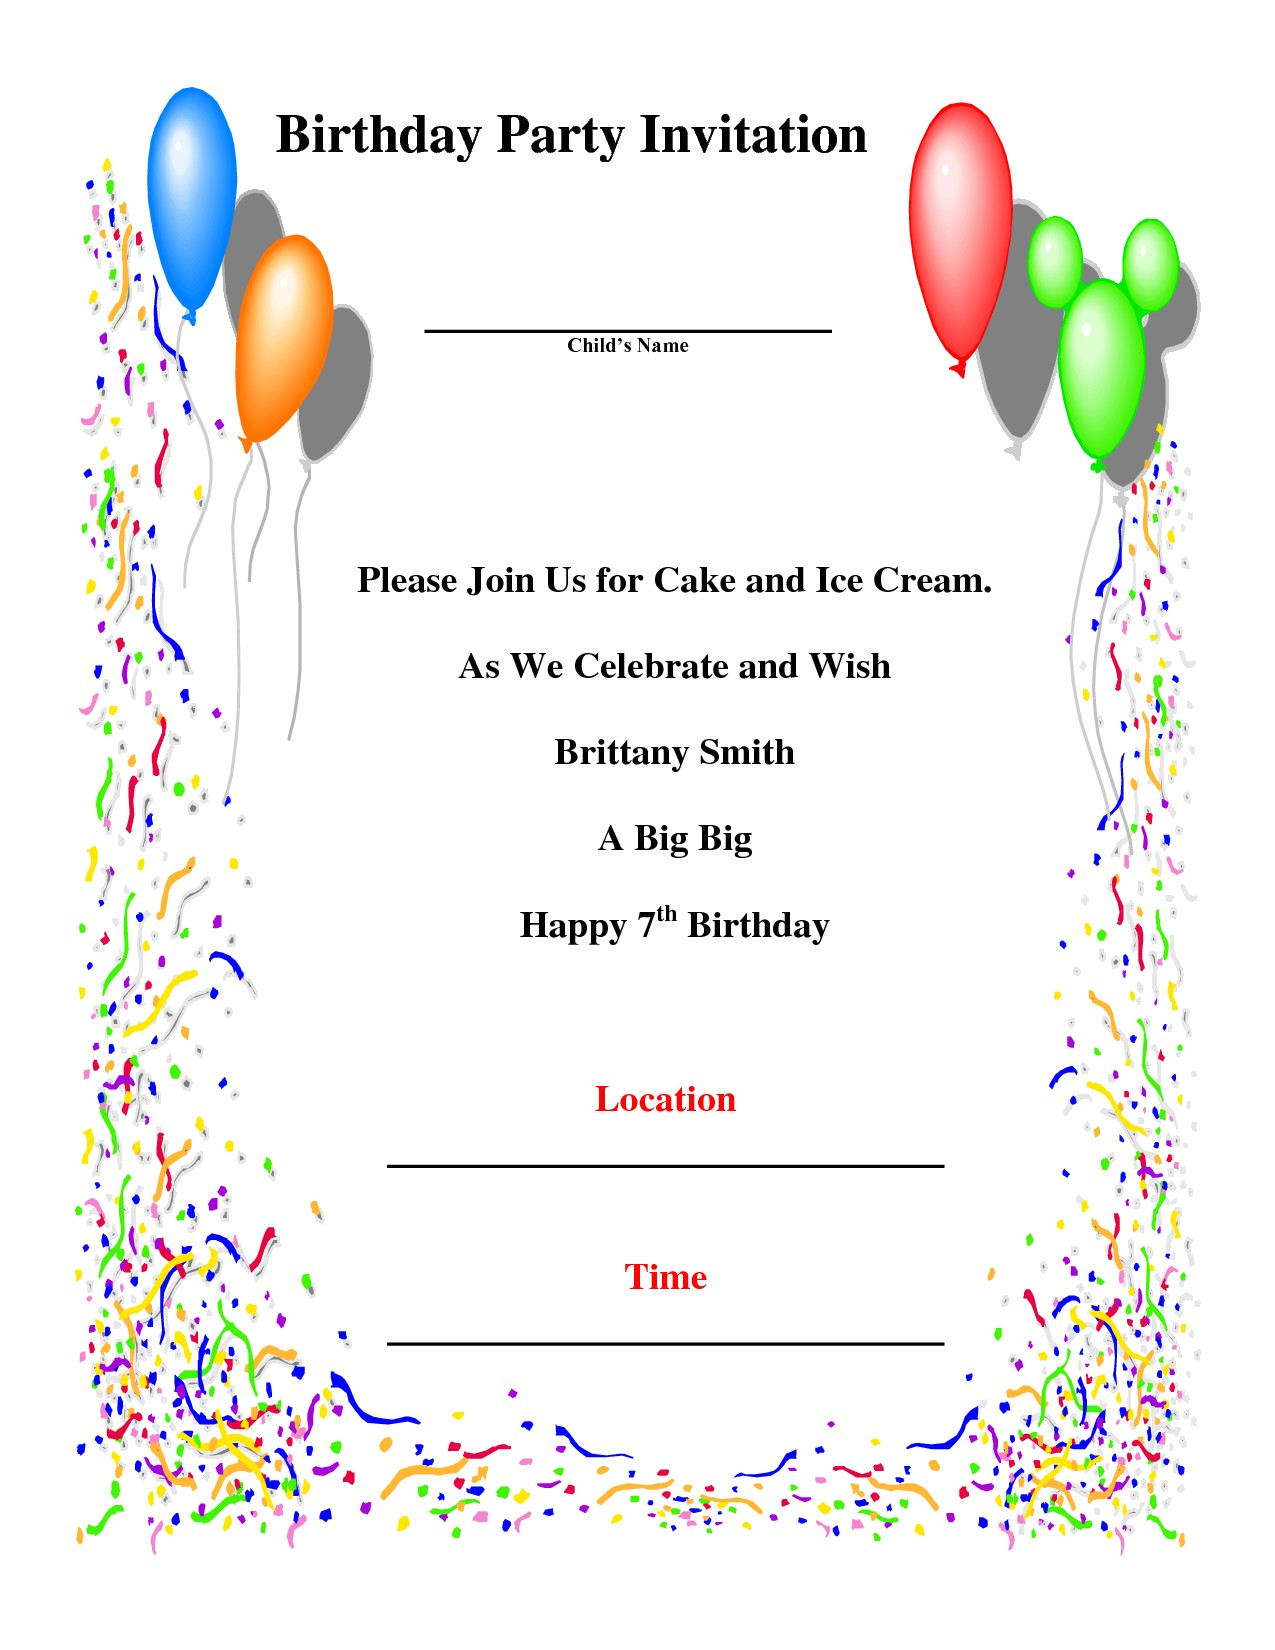 create birthday party invitations